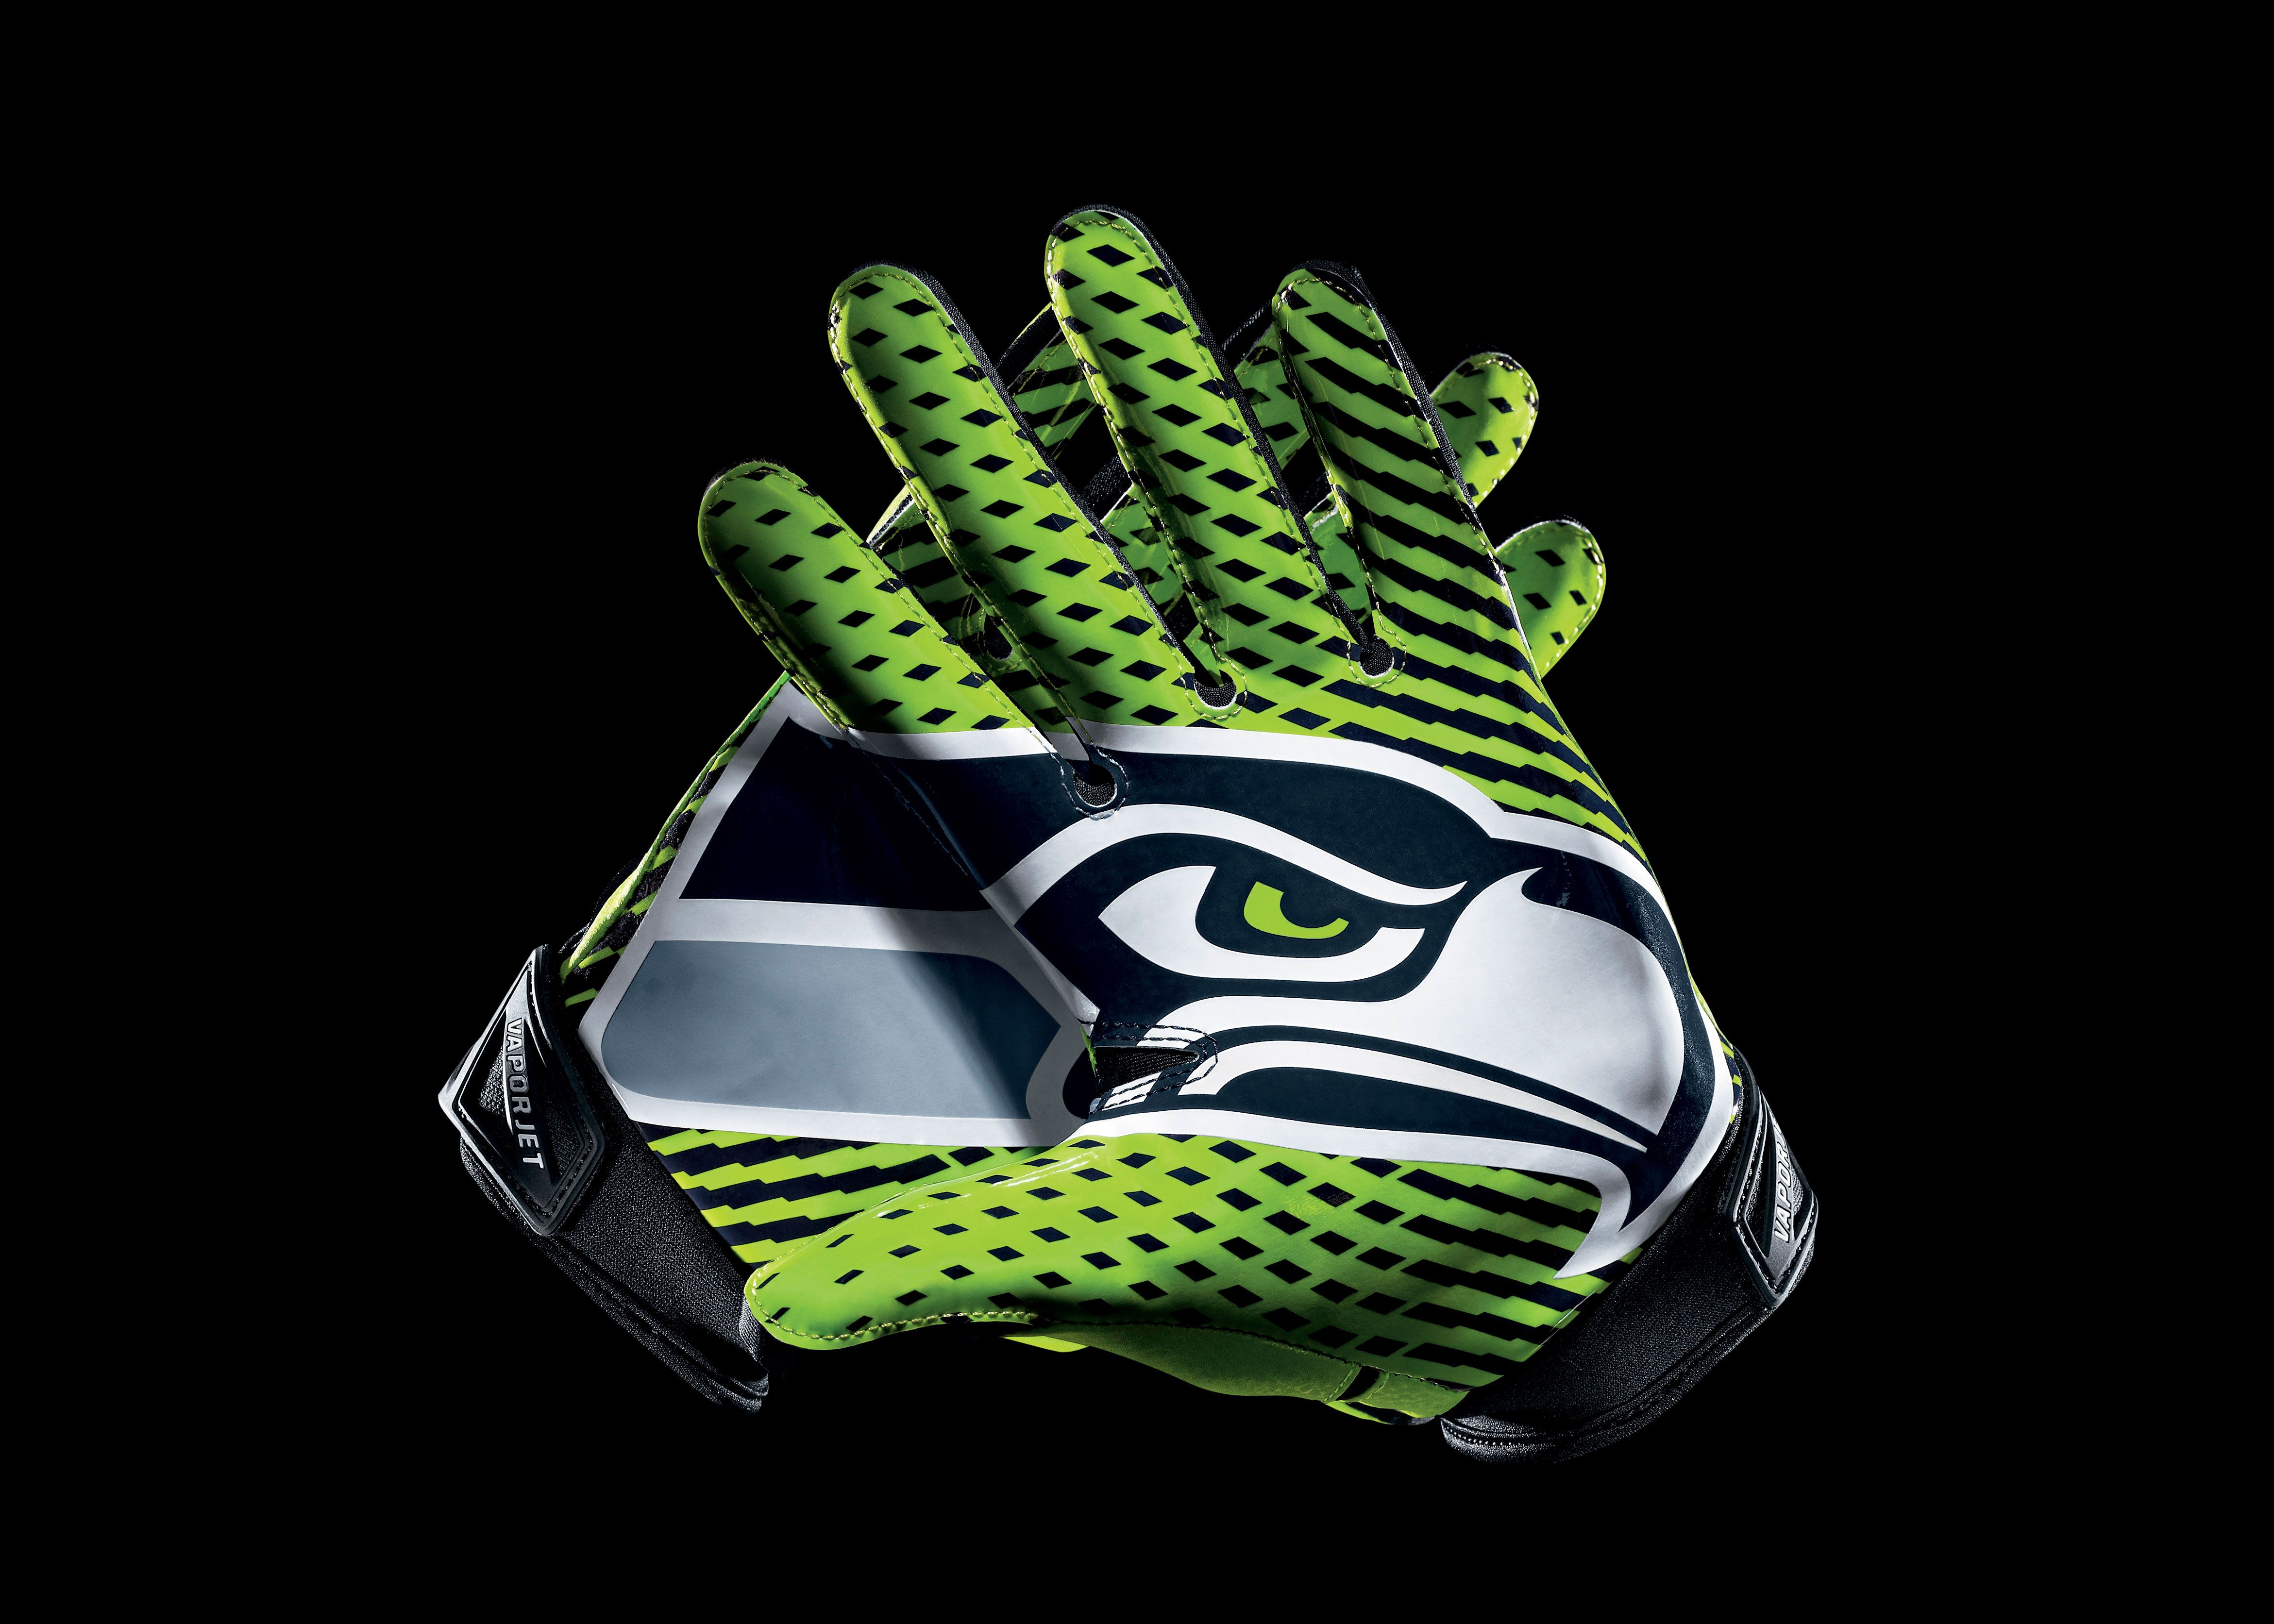 New city of seattle in seahawk colors download Google Search | Seattle  hot sale